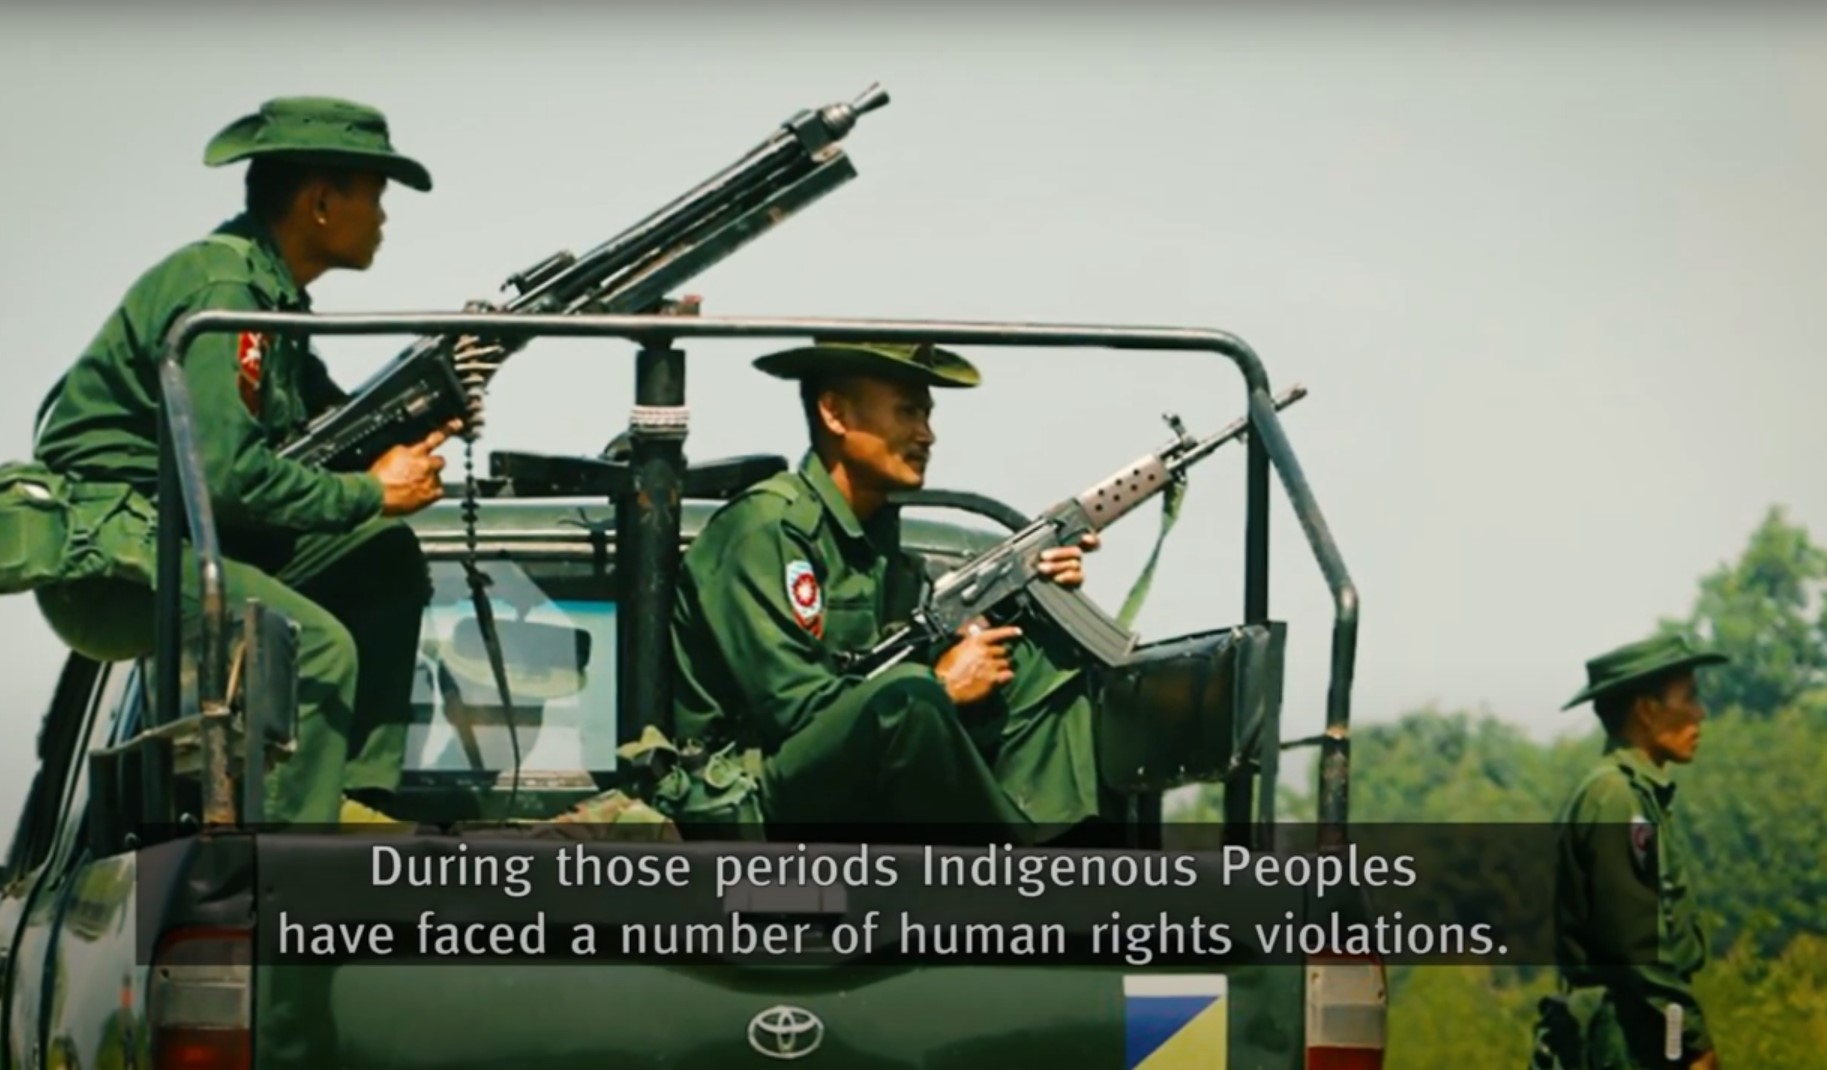 The Myanmar Military Coup in the words of Indigenous Activists